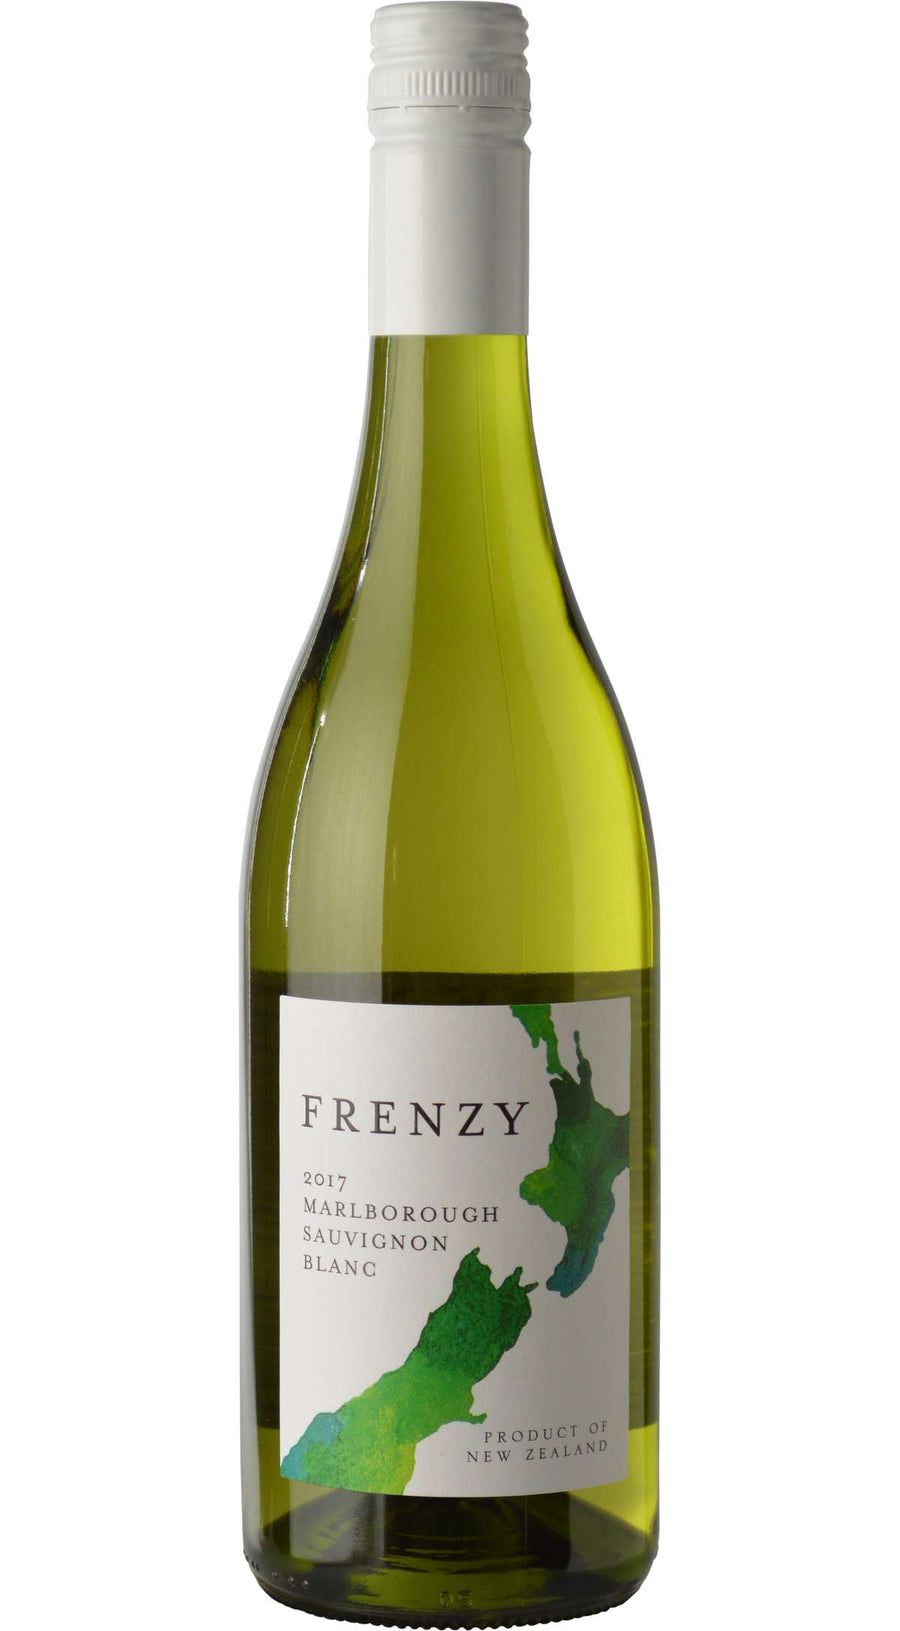 2019 Frenzy Sauvignon Blanc Marlborough